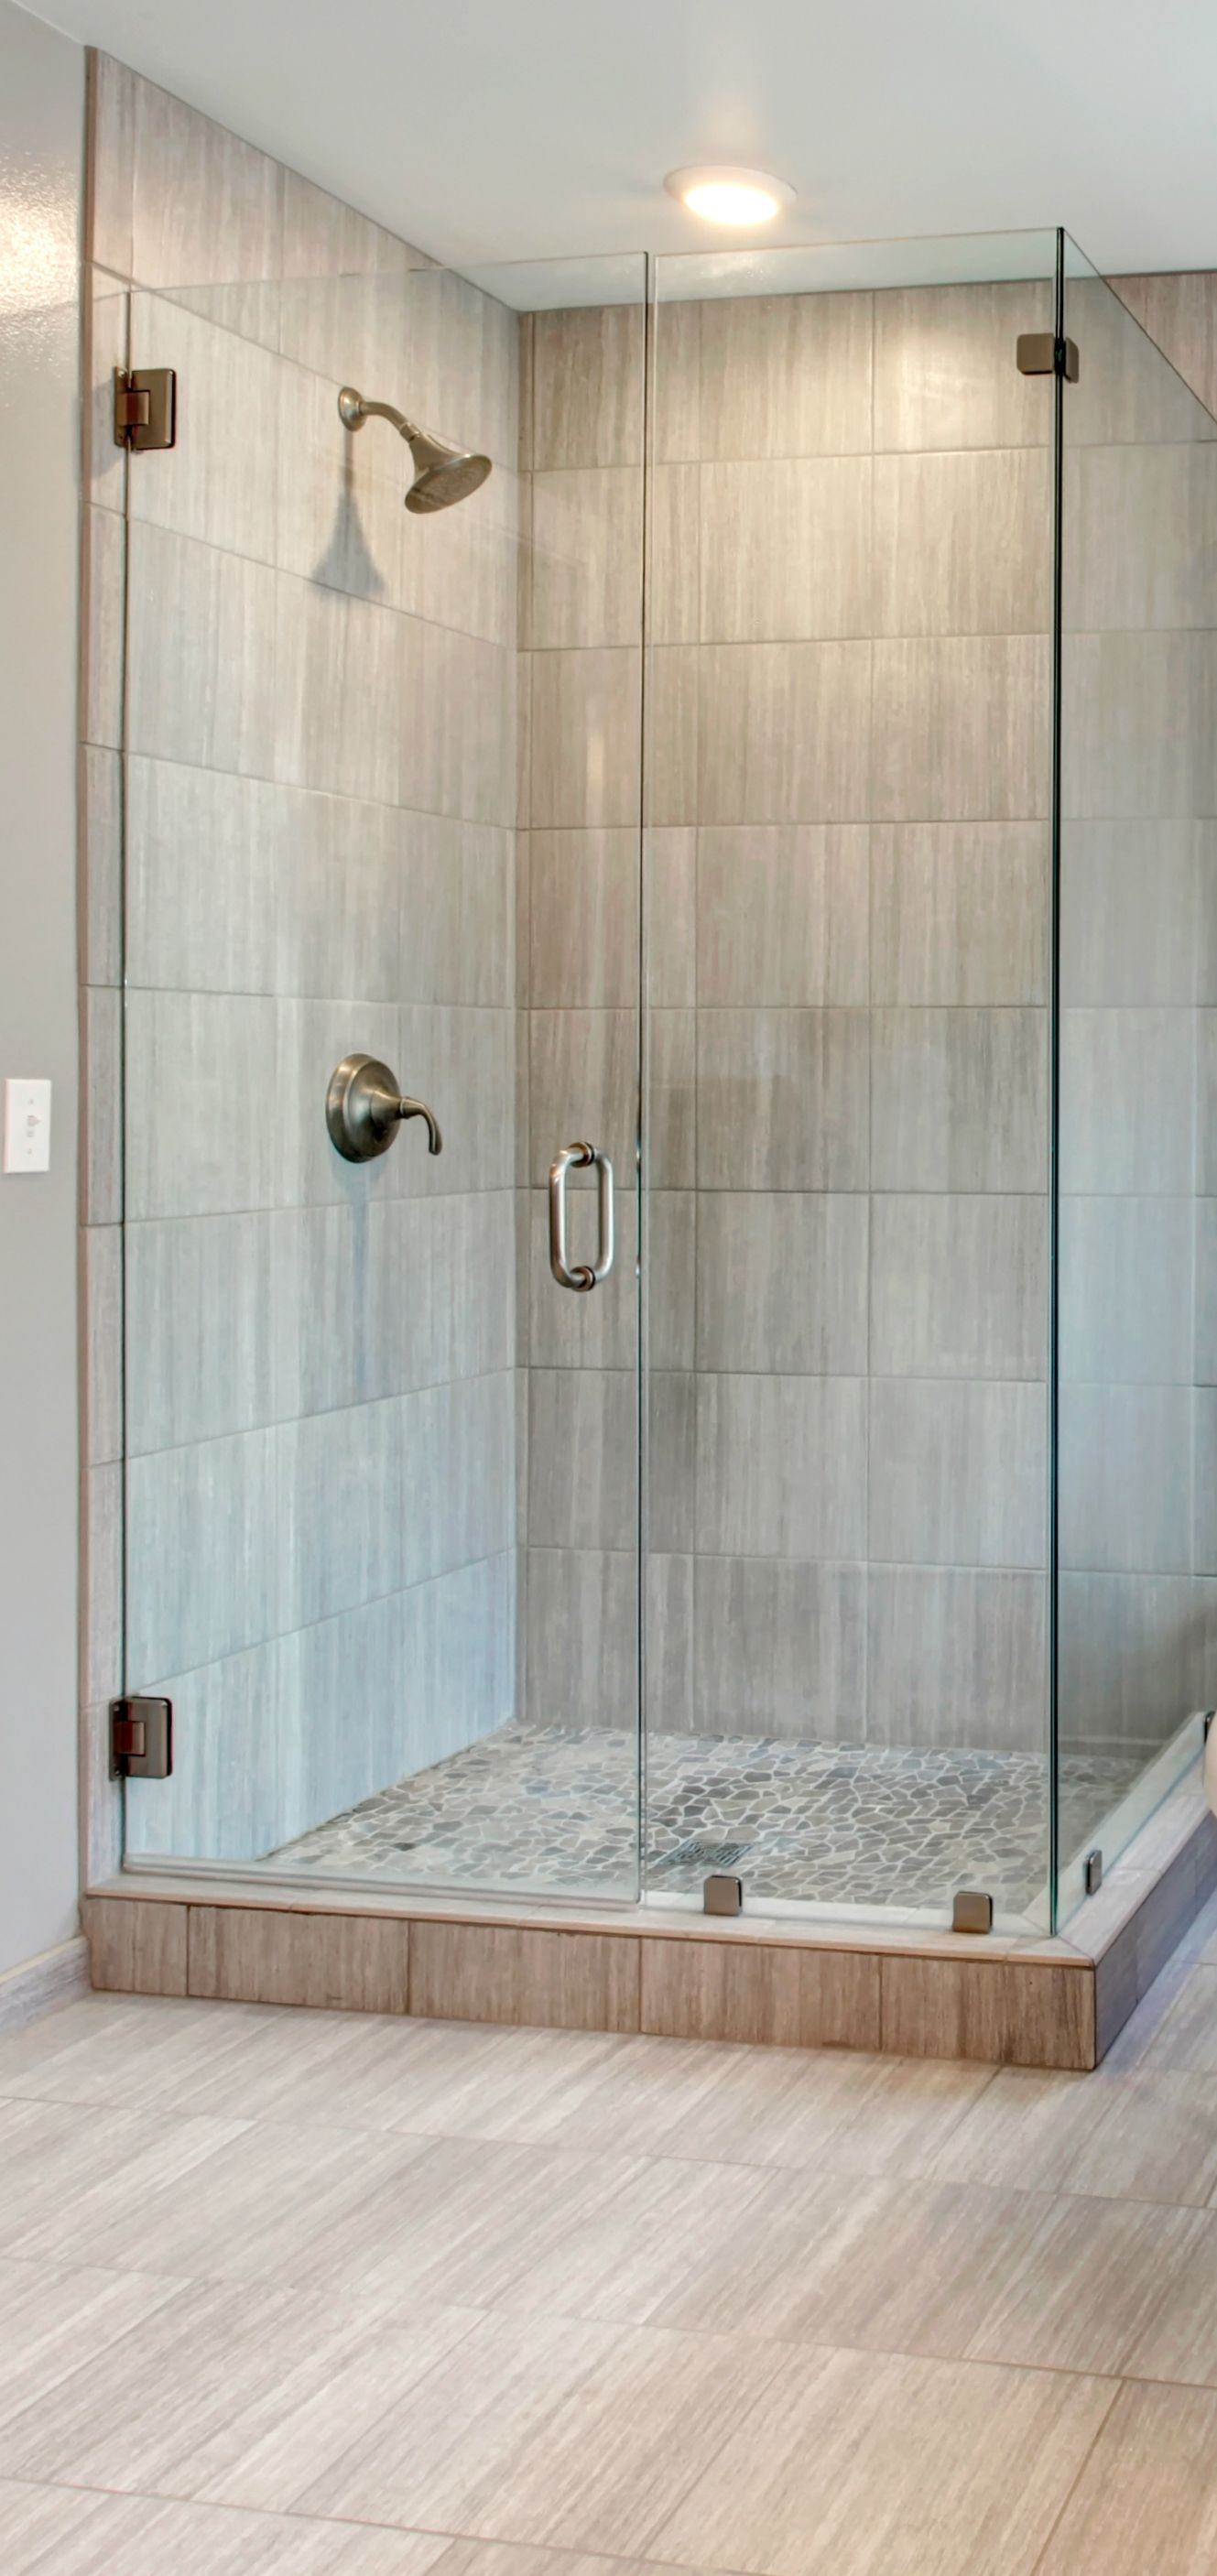 Showers Corner Walk In Shower Ideas For Simple Small Bathroom With Natural Stone Bathroom Shower Stalls Small Bathroom Remodel Designs Bathroom Remodel Designs